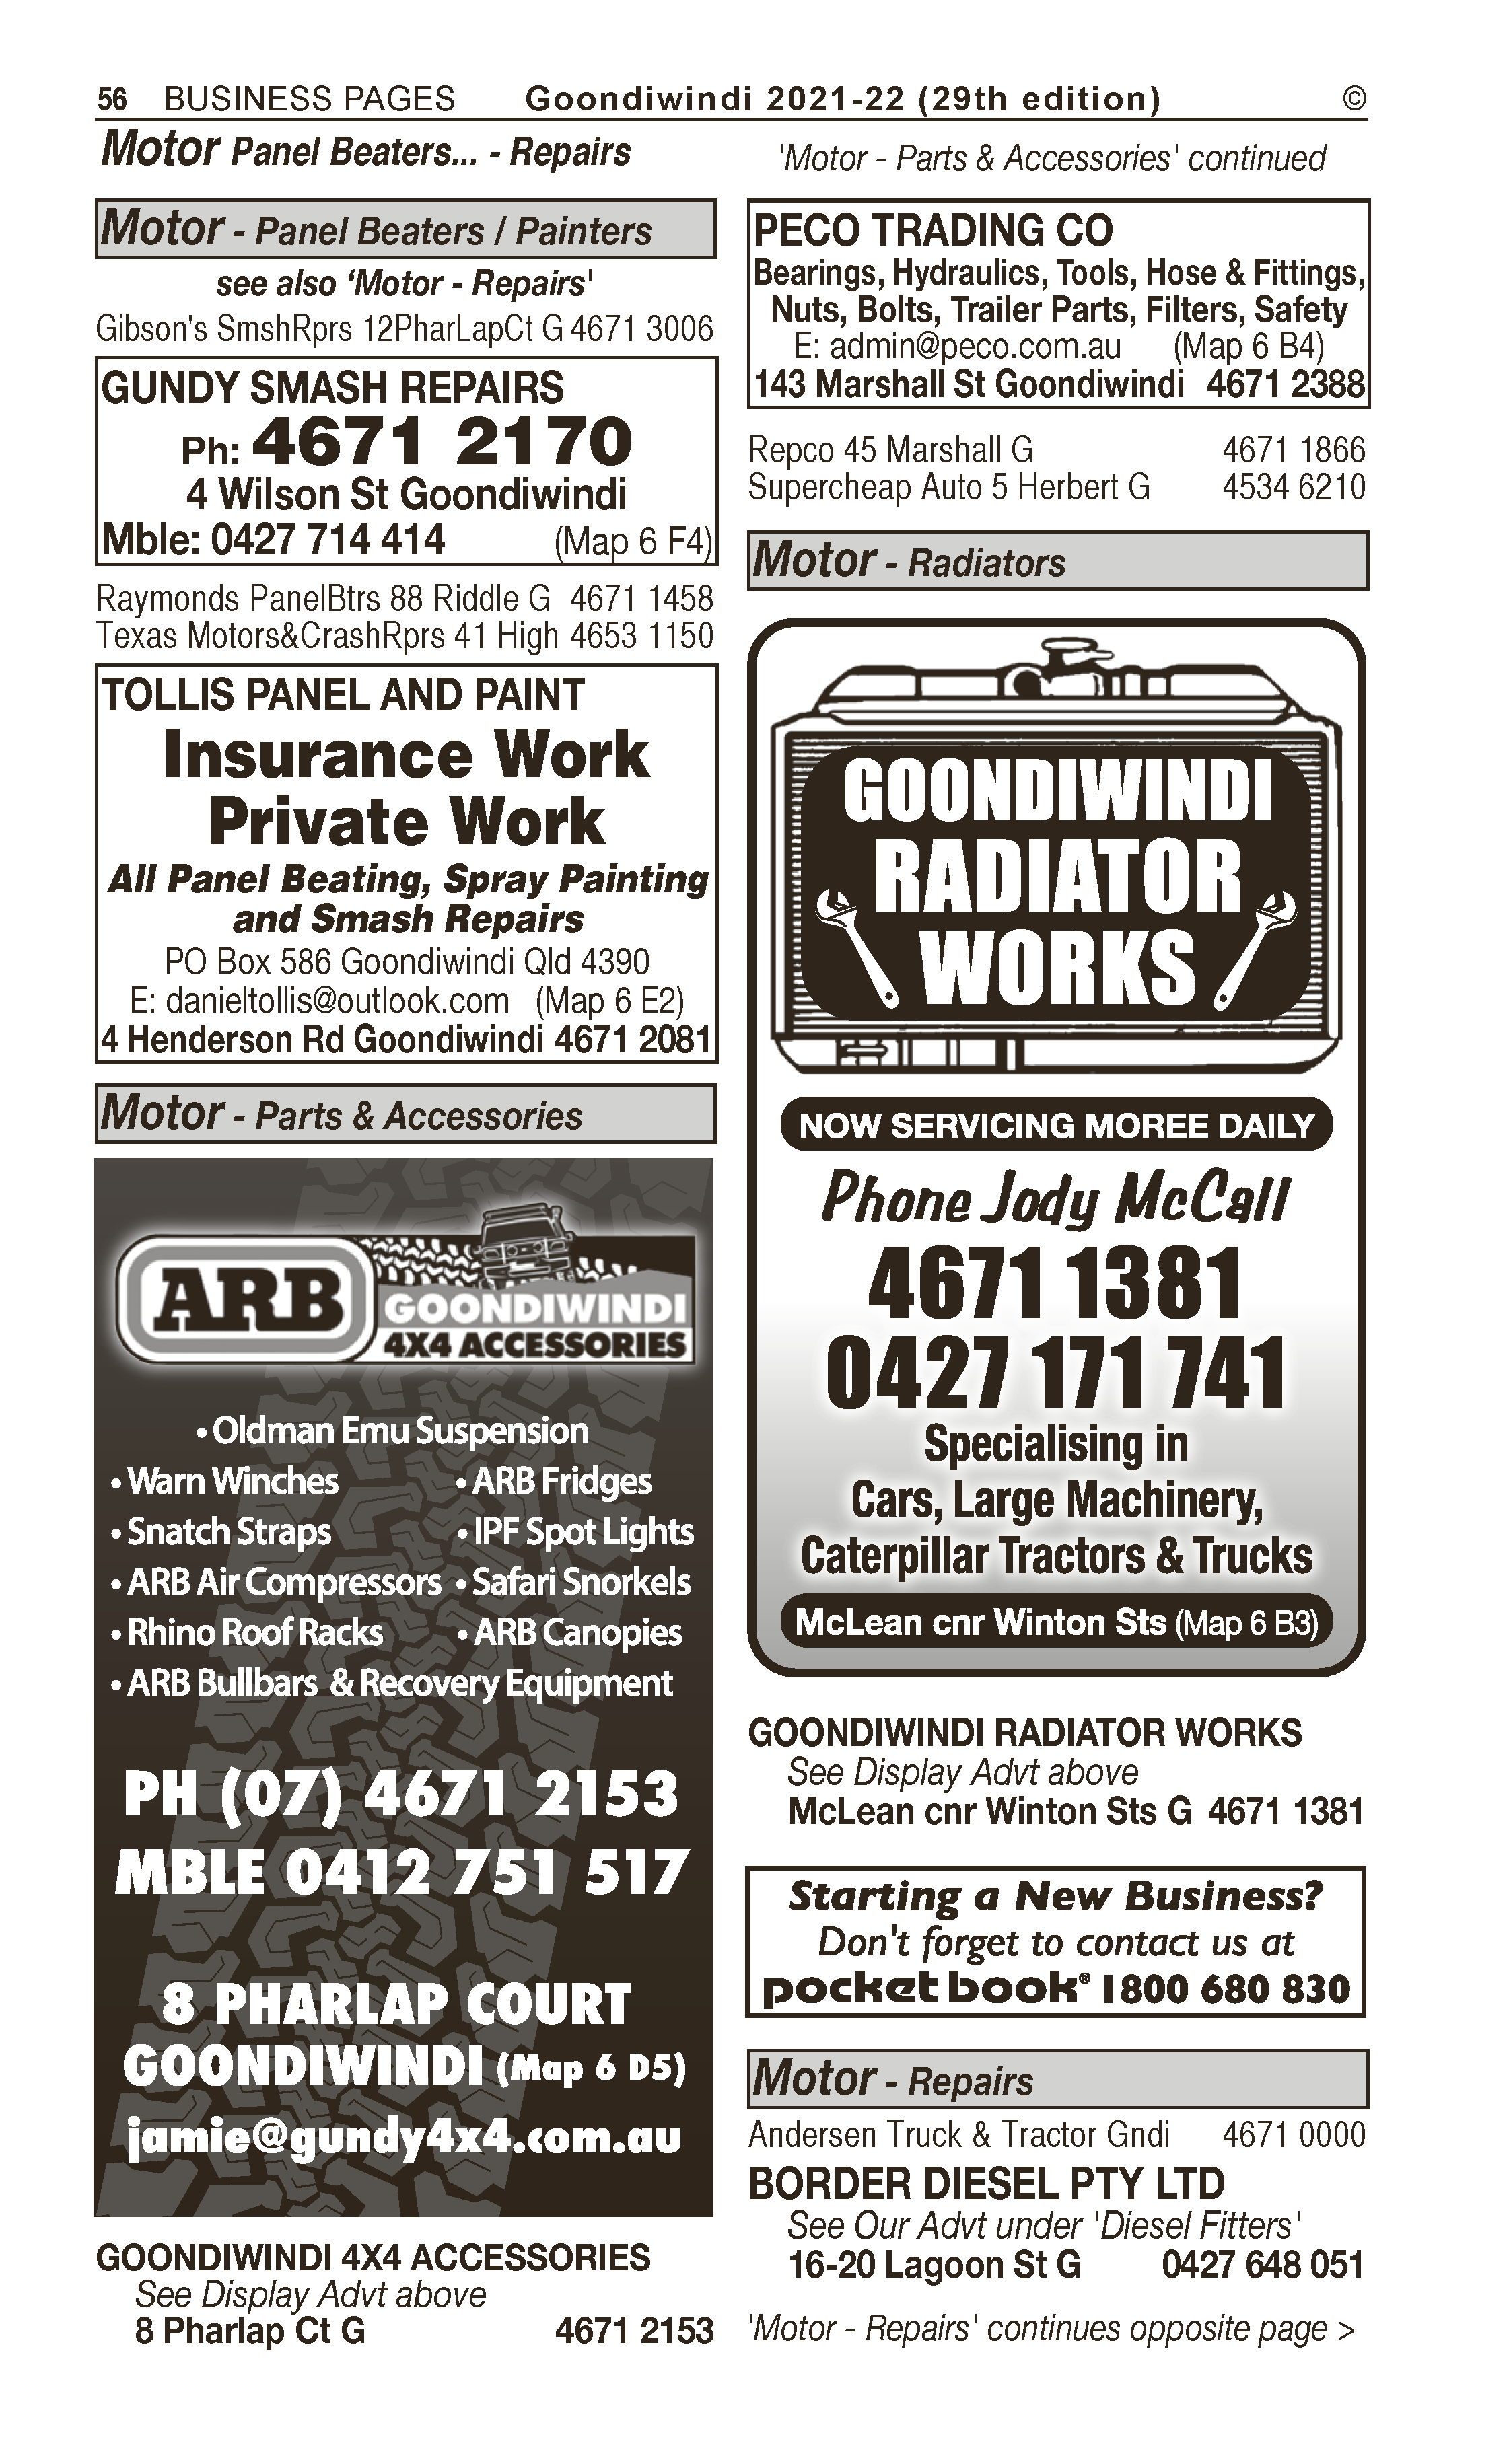 Hillard Michael Transport | Livestock – Transport Services in Goondiwindi | PBezy Pocket Books local directories - page 56